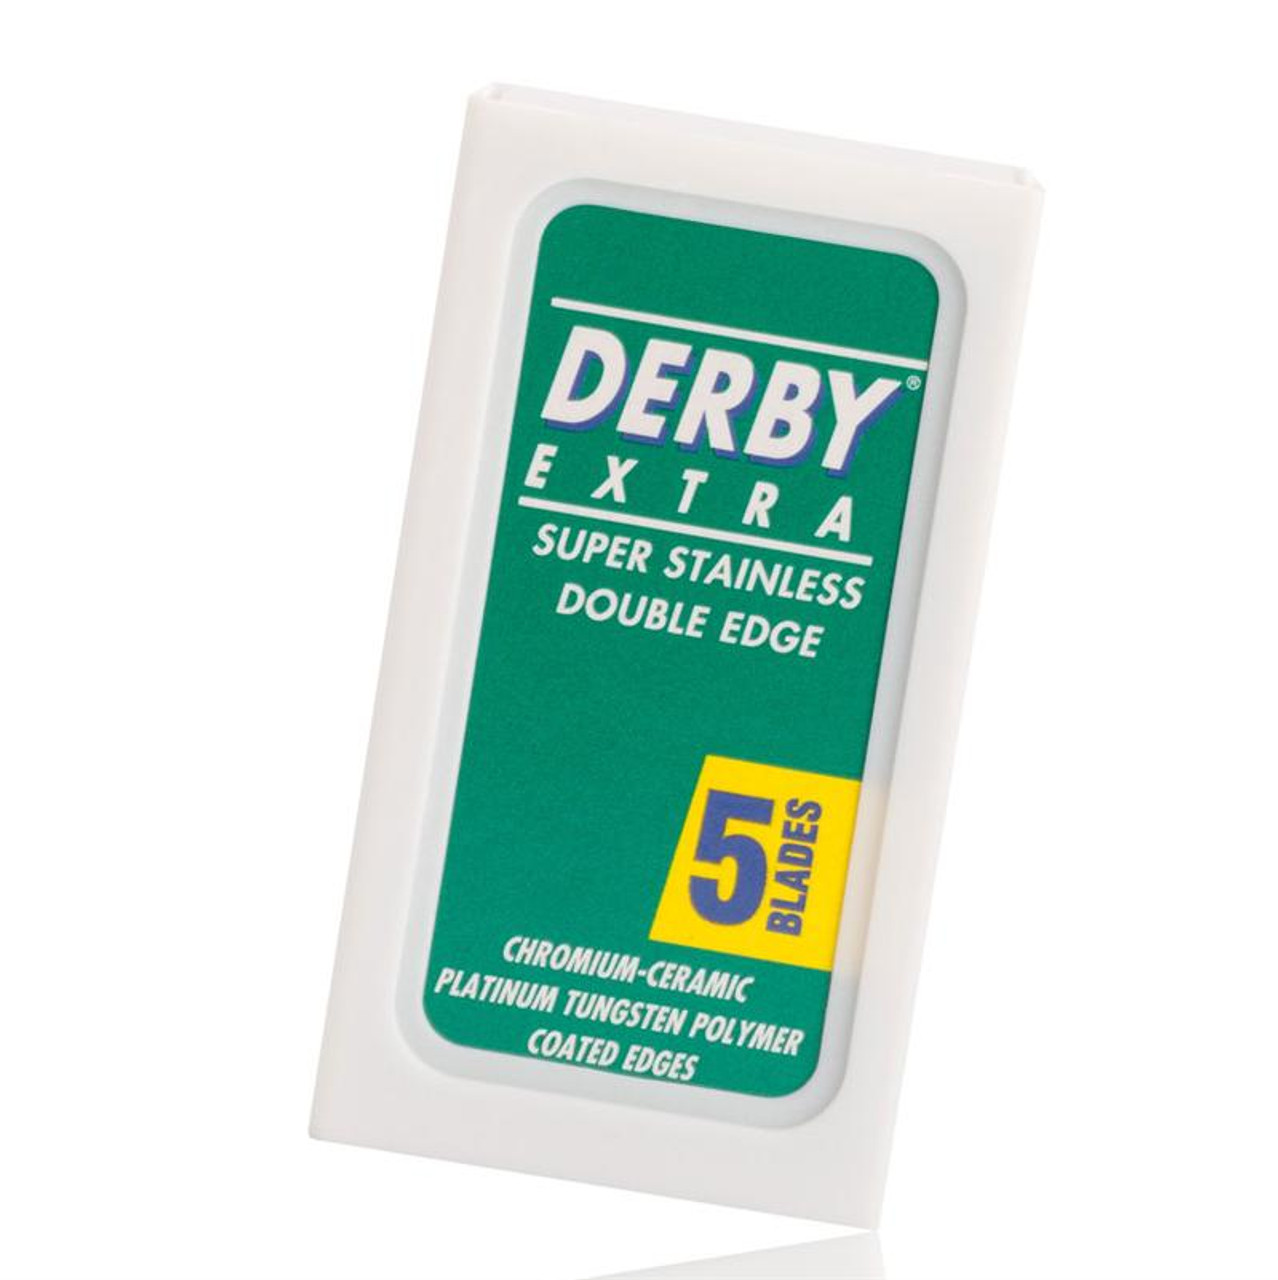 Boker Set of five Derby replacement blades for safety razors